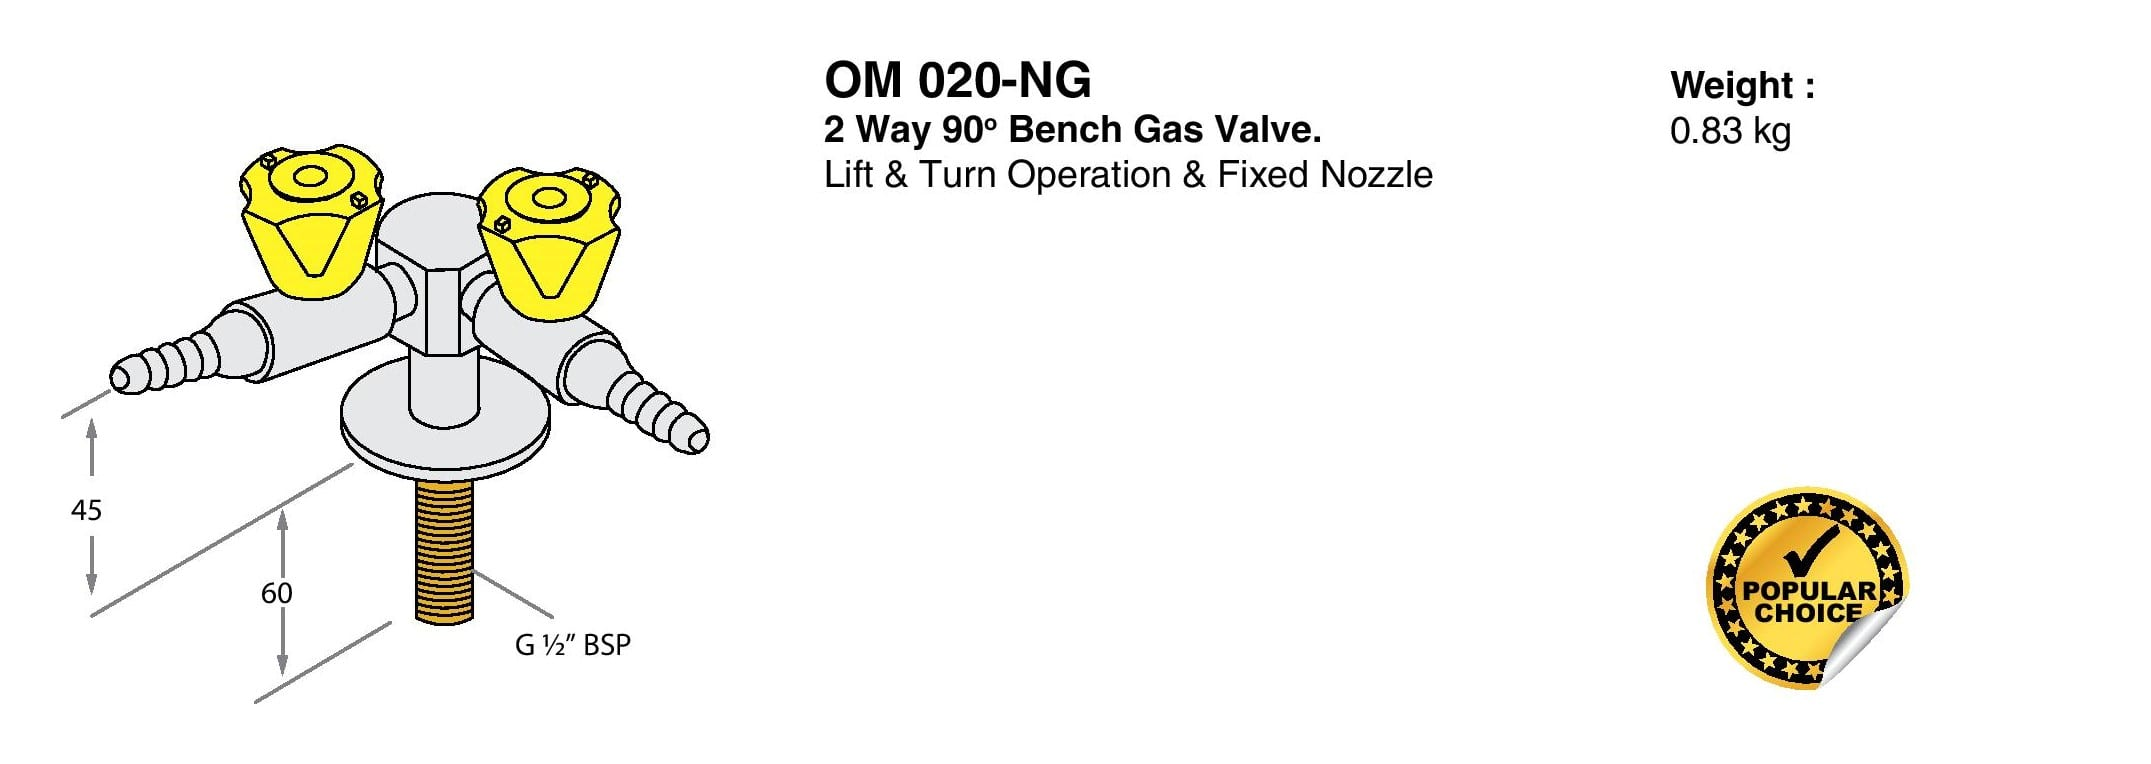 2 Way 90° Bench Gas Valve Drawings